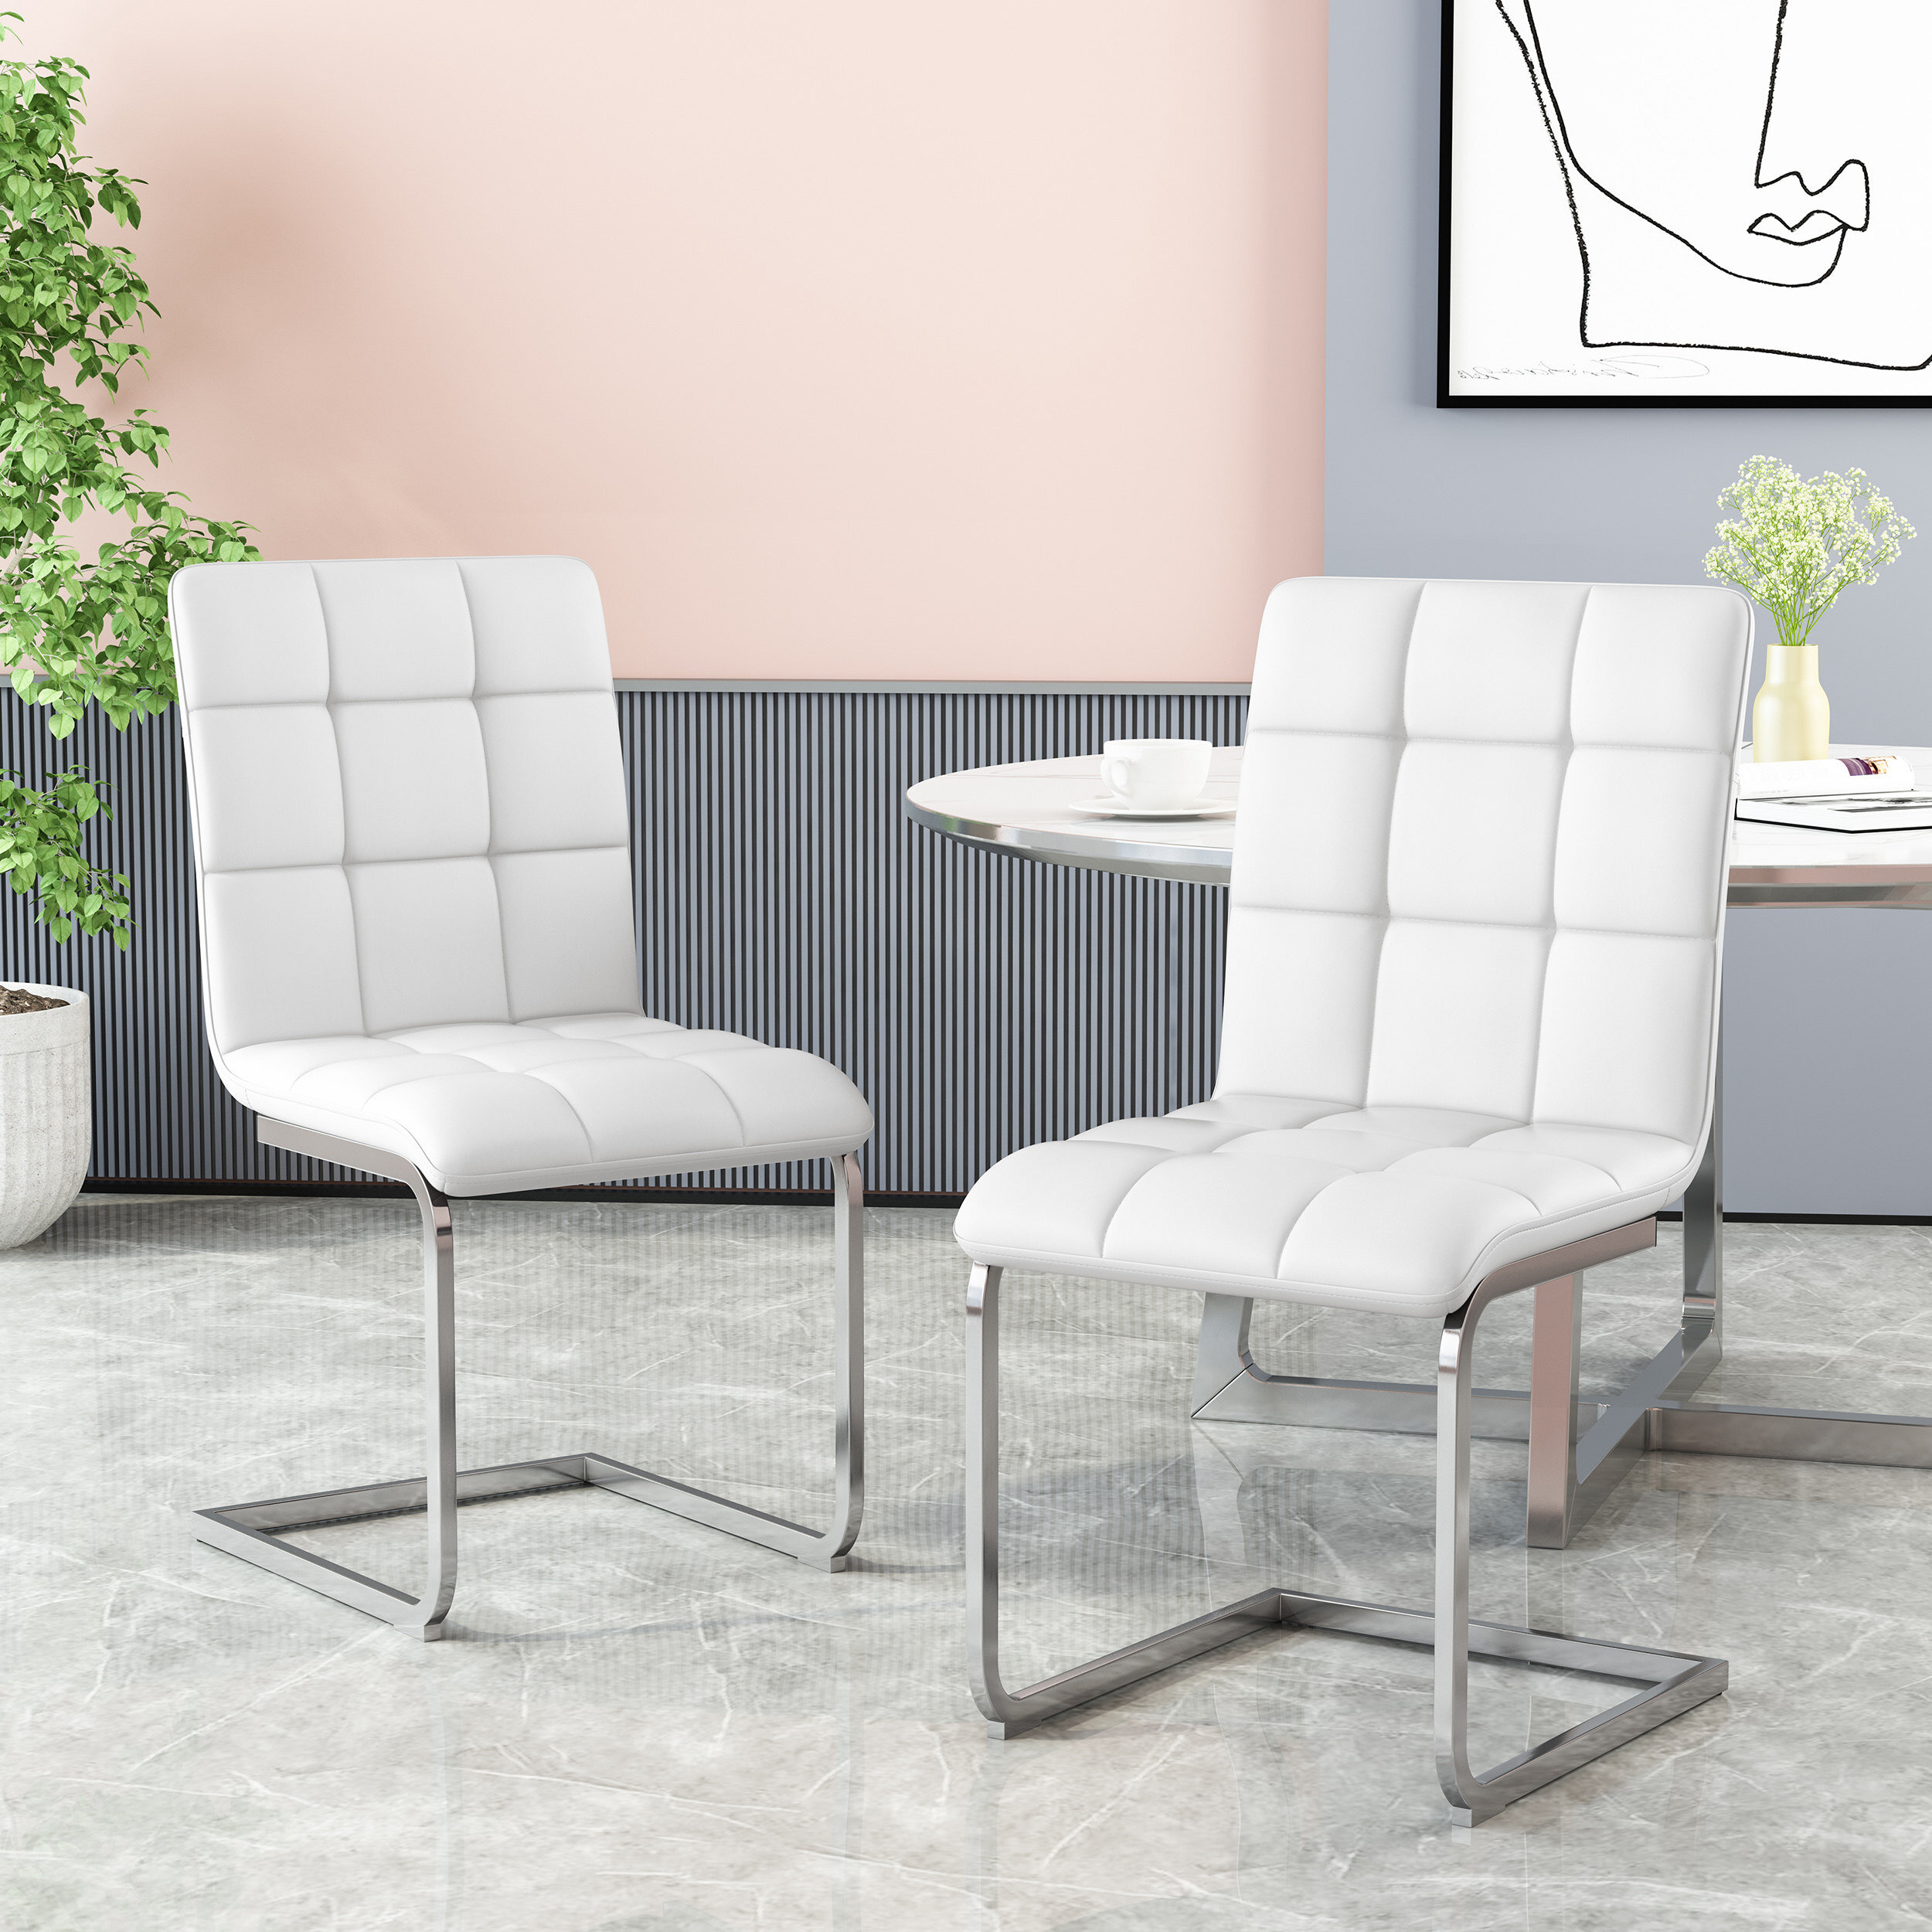 Modern Faux Leather Dining Chairs Indoor Use Black Living Bedroom Dining Room Side Chairs/Set of 2 Comfortable Kitchen Chairs with Chrome Legs for Kitchen